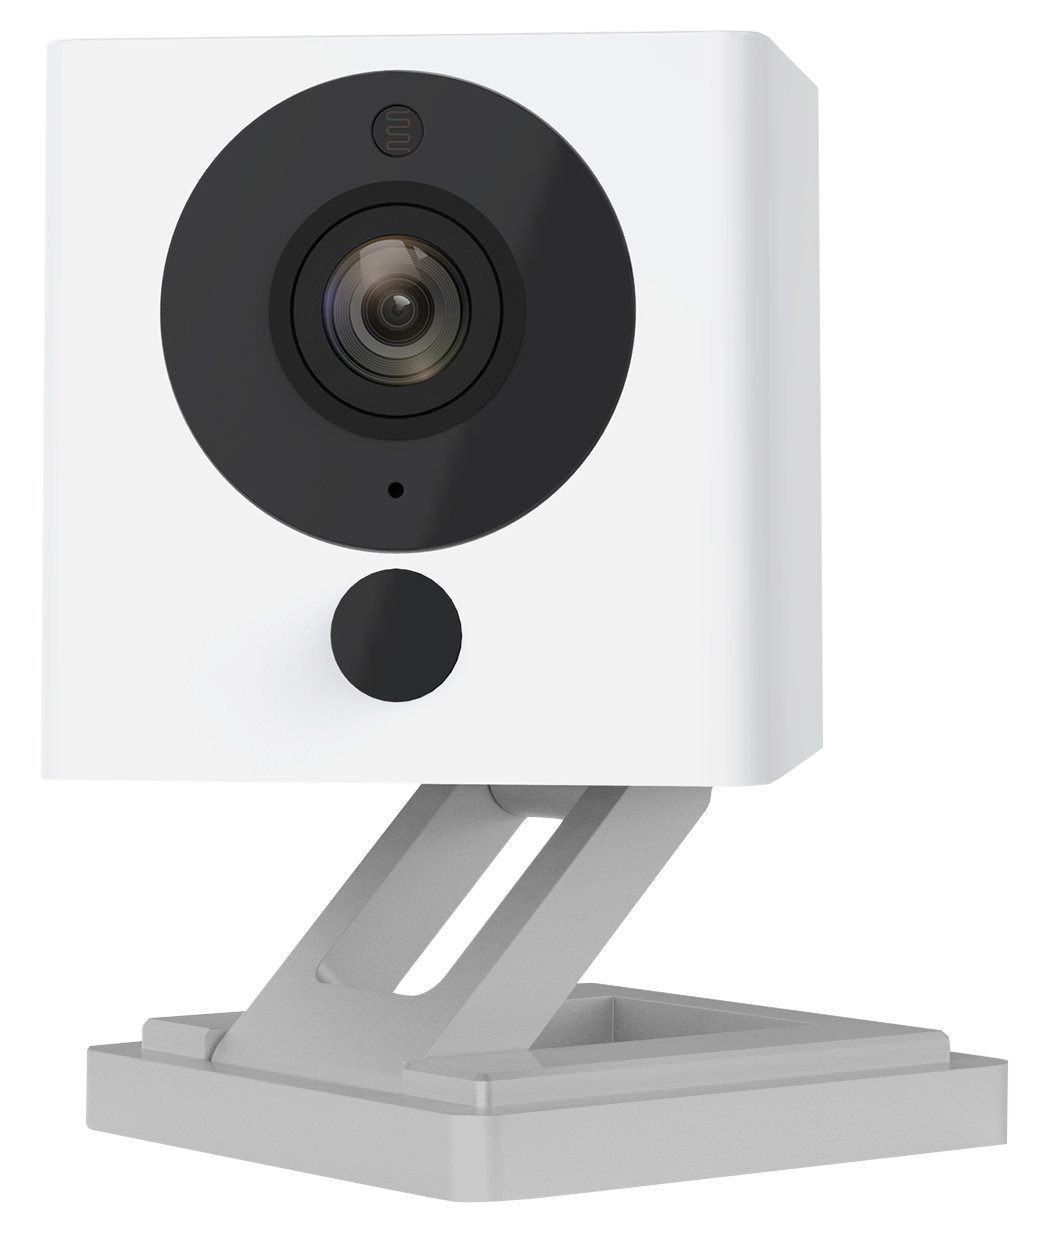 Wyze Cam 1080p HD Indoor Wireless Smart Home Camera with Night Vision, 2-Way Audio, Person Detection, Works with Alexa & the Google Assistant (Pack of 2) by Wyze Labs